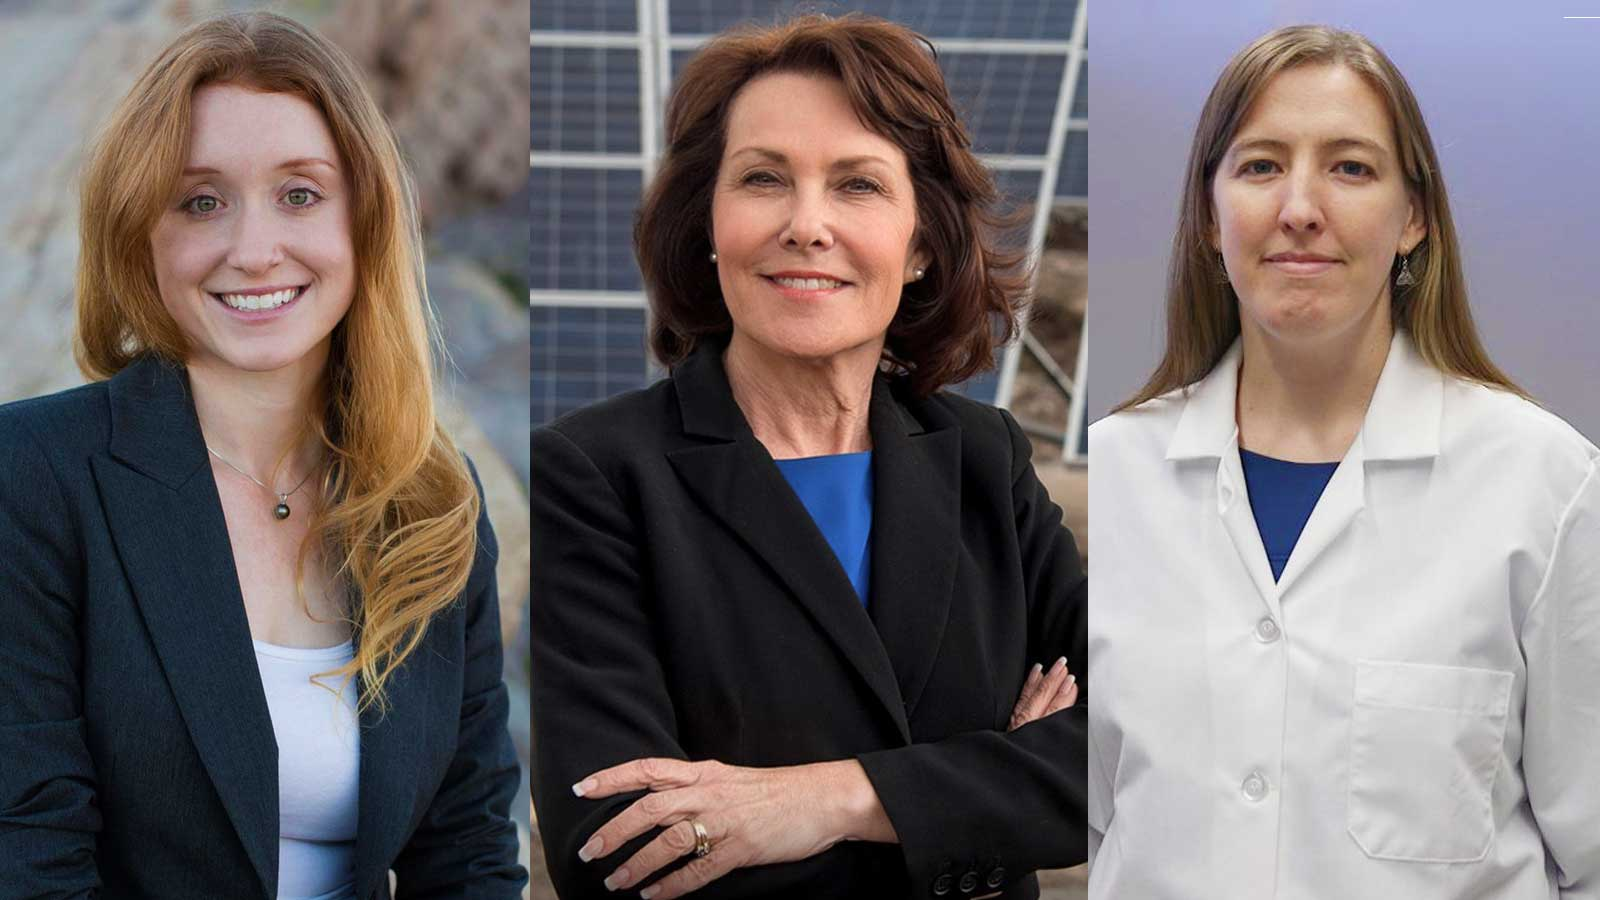 Jess Phoenix and other women scientists running for office in 2018